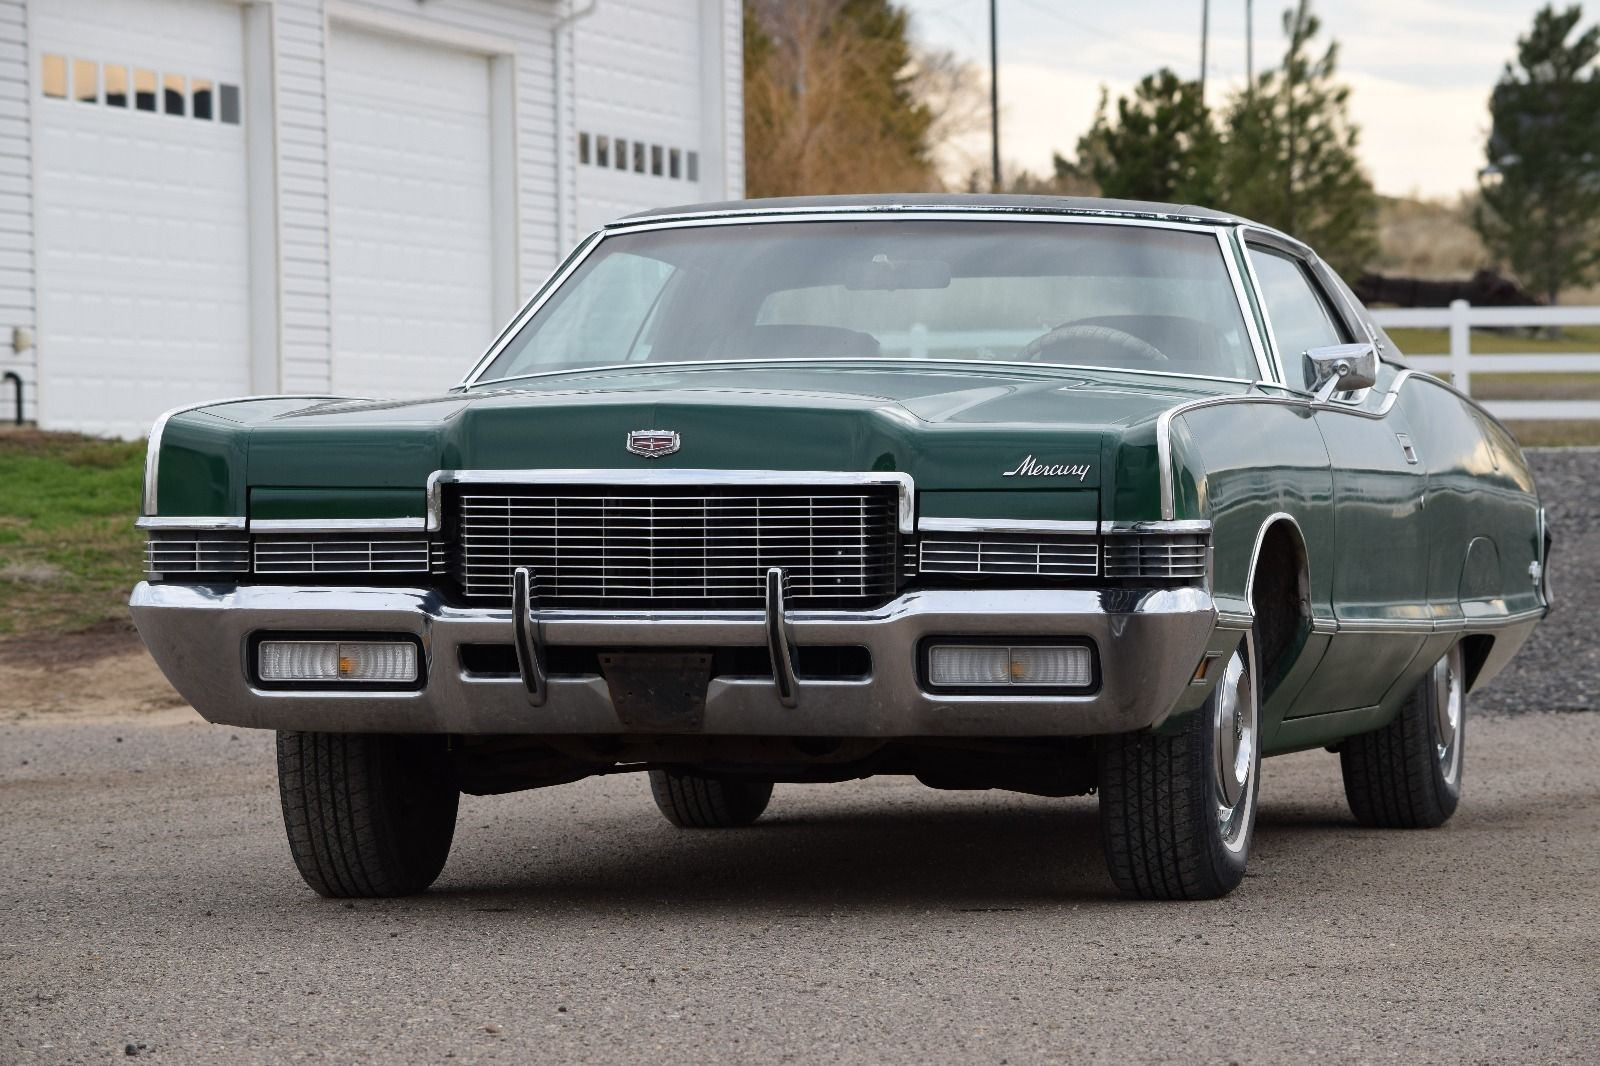 BangShift.com Muscle Car Or Luxury Barge? This 1971 Mercury Marquis ...